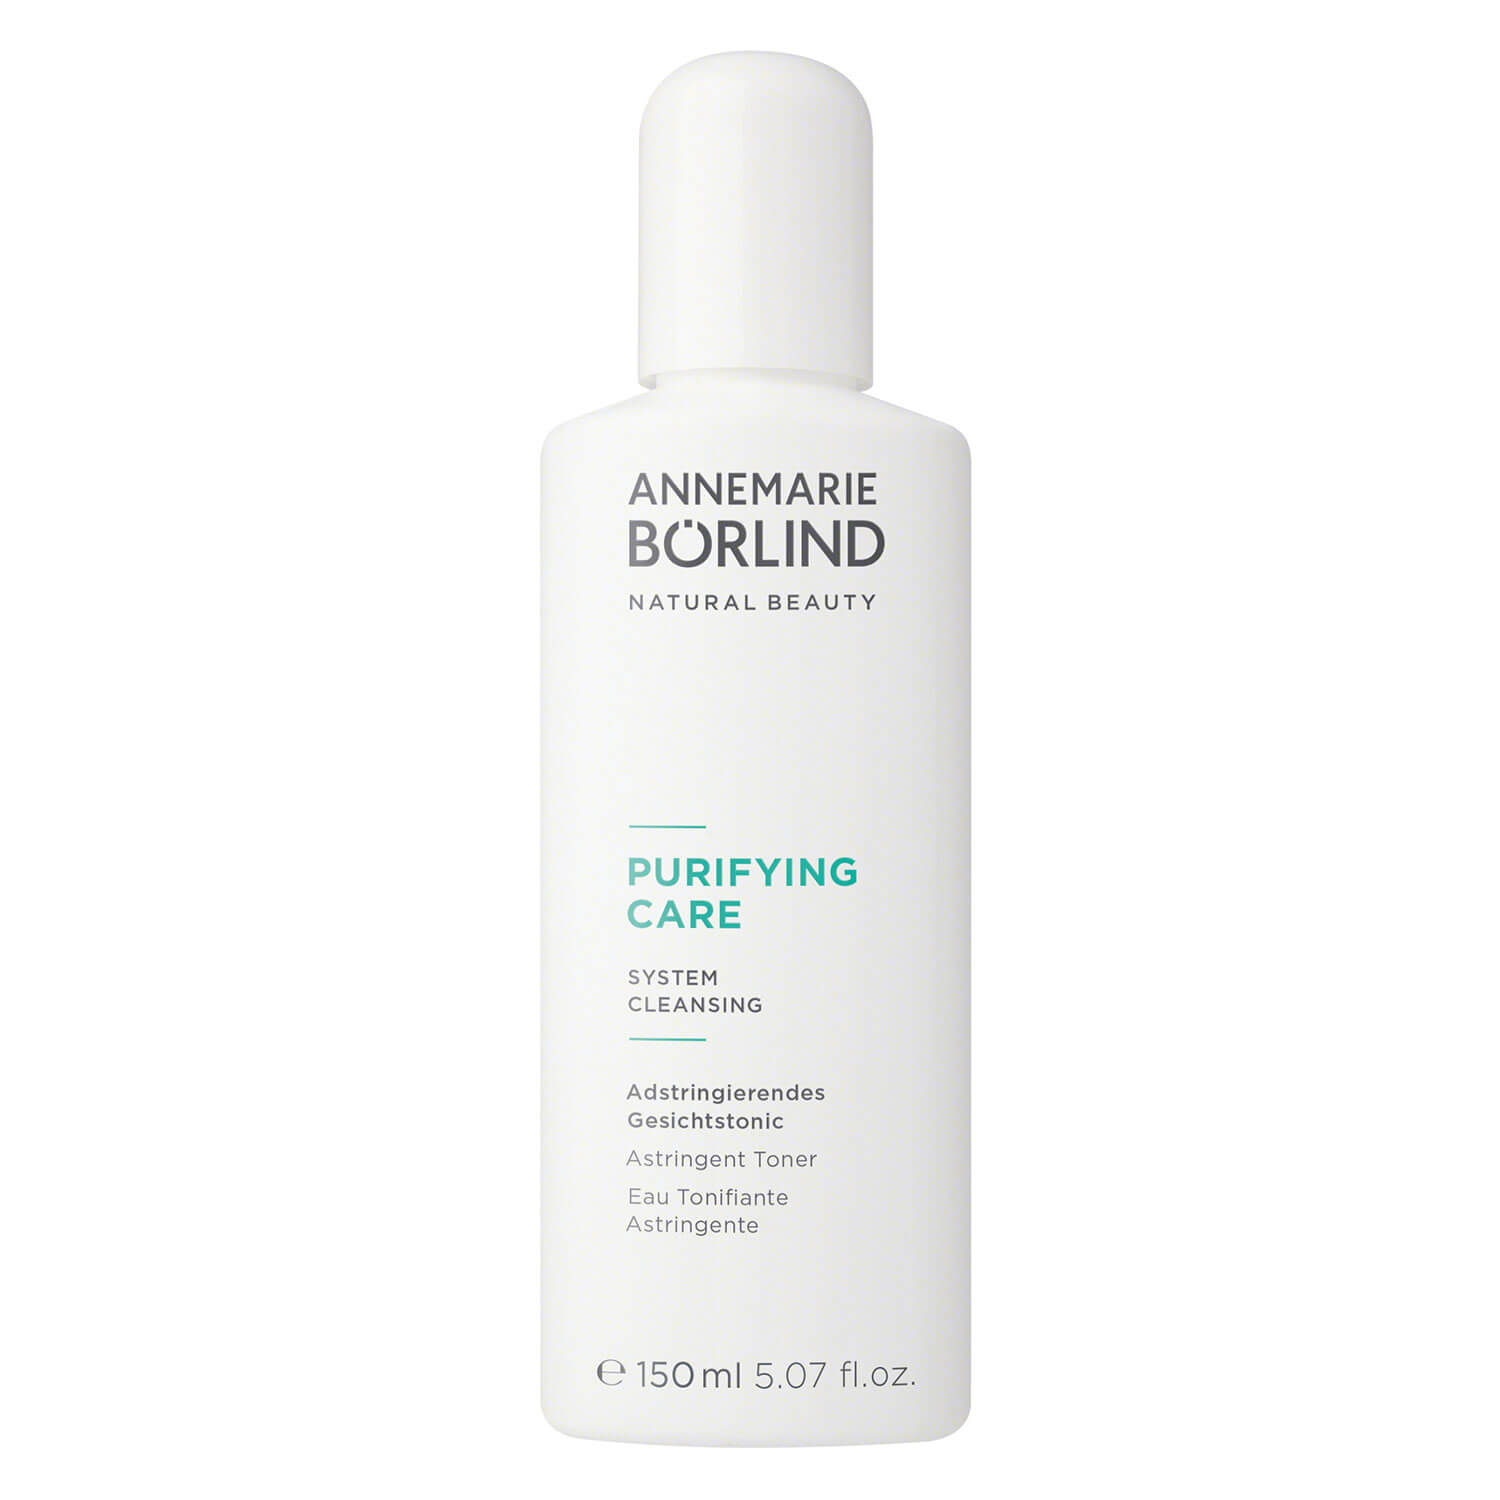 Purifying Care - Adstringierendes Gesichtstonic